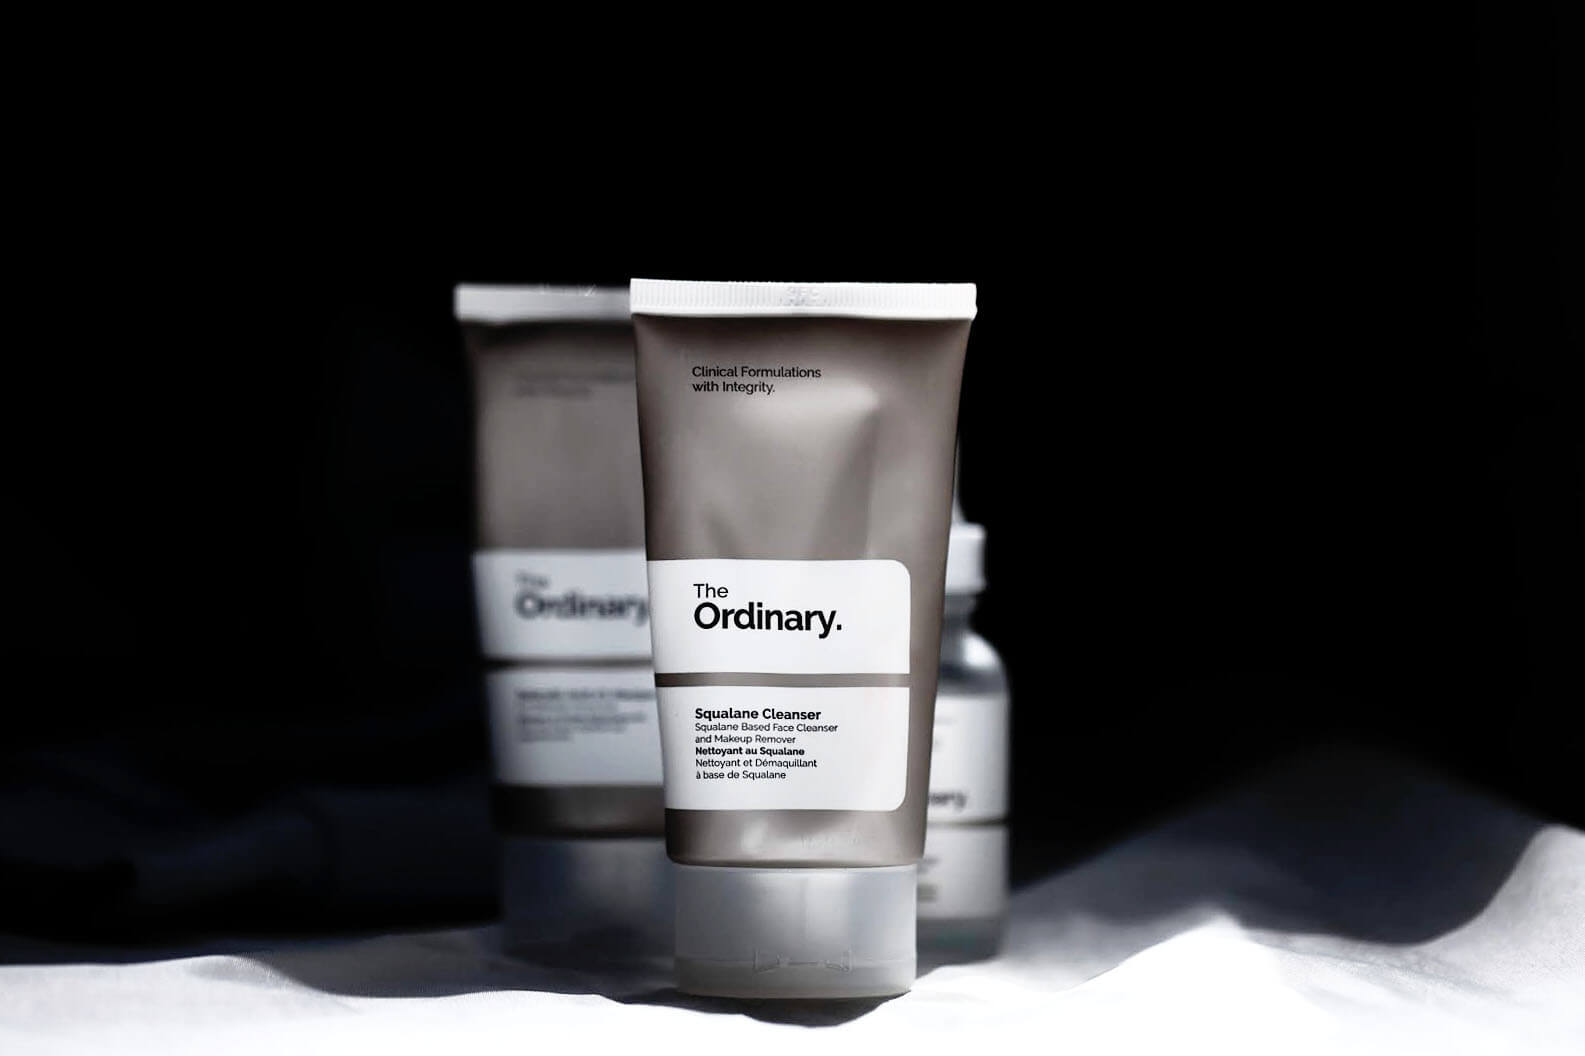 The Ordinary Nettoyant Squalane avis